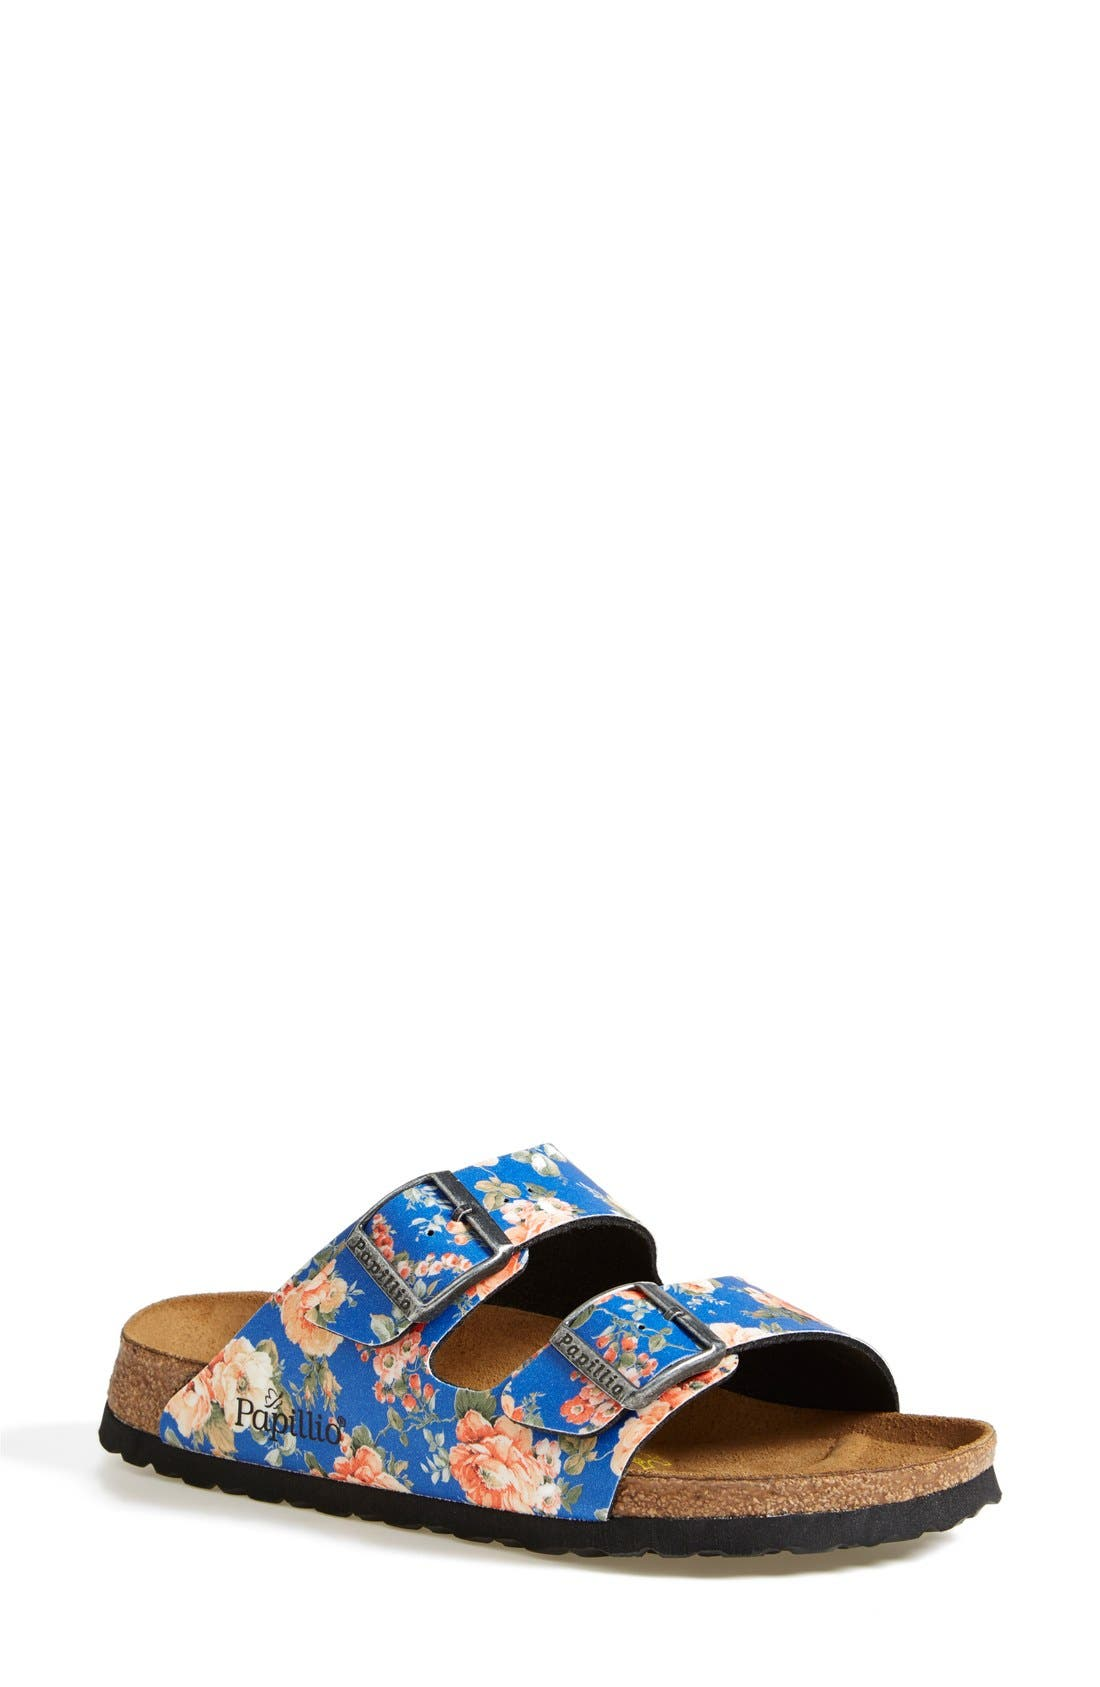 Alternate Image 1 Selected - Birkenstock 'Arizona' Floral Print Sandal (Women)